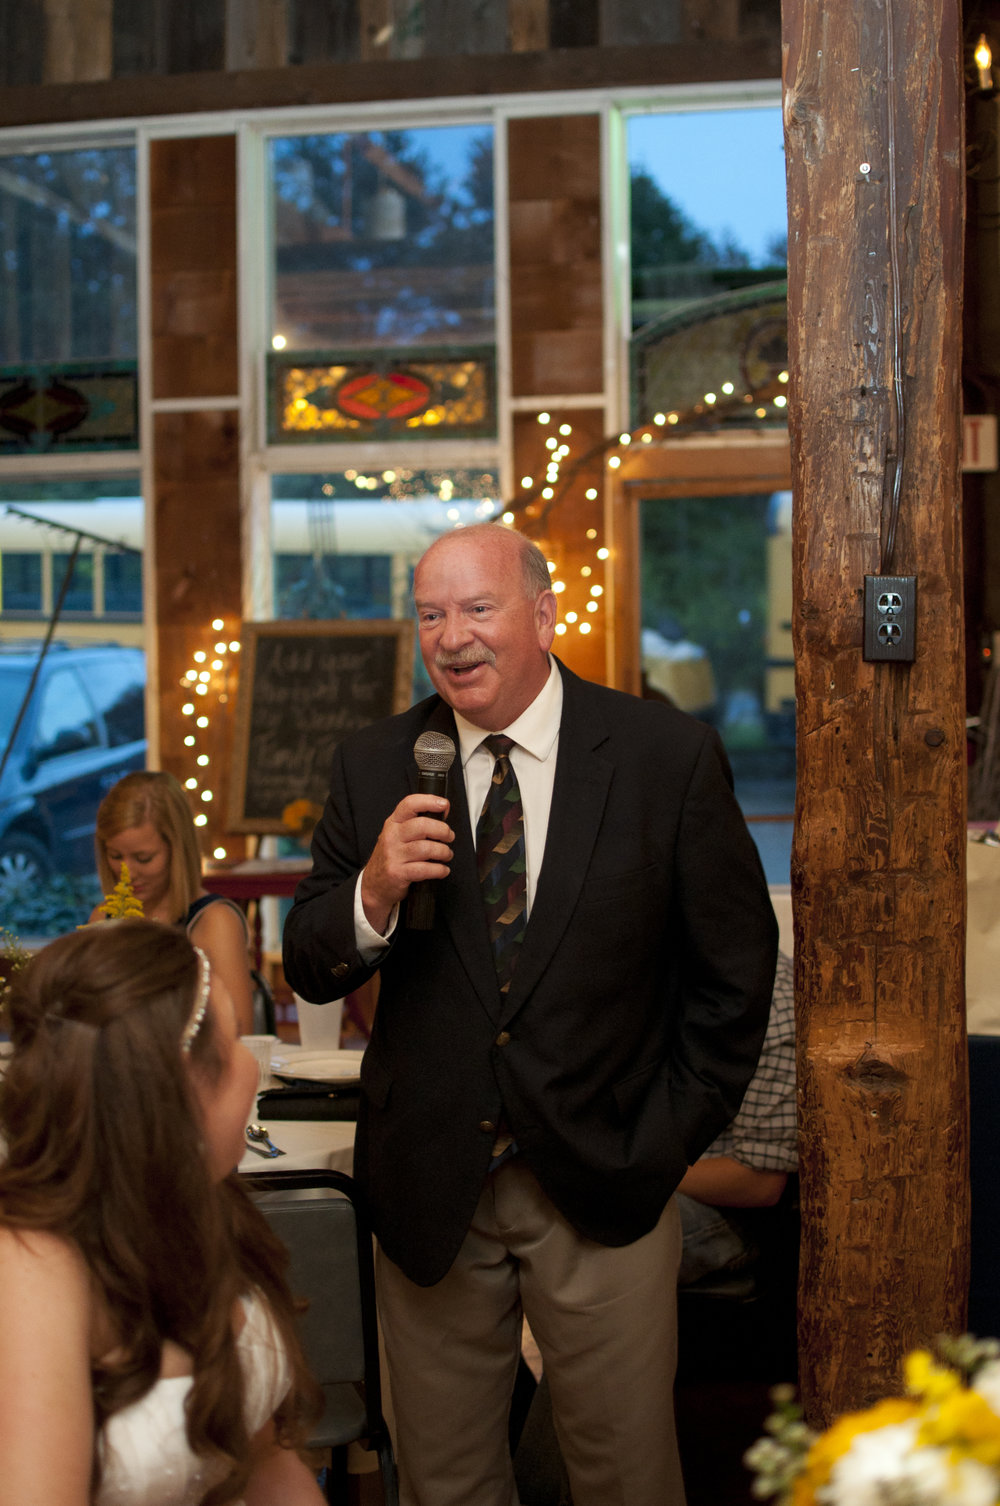 Wedding speech from father of the bride